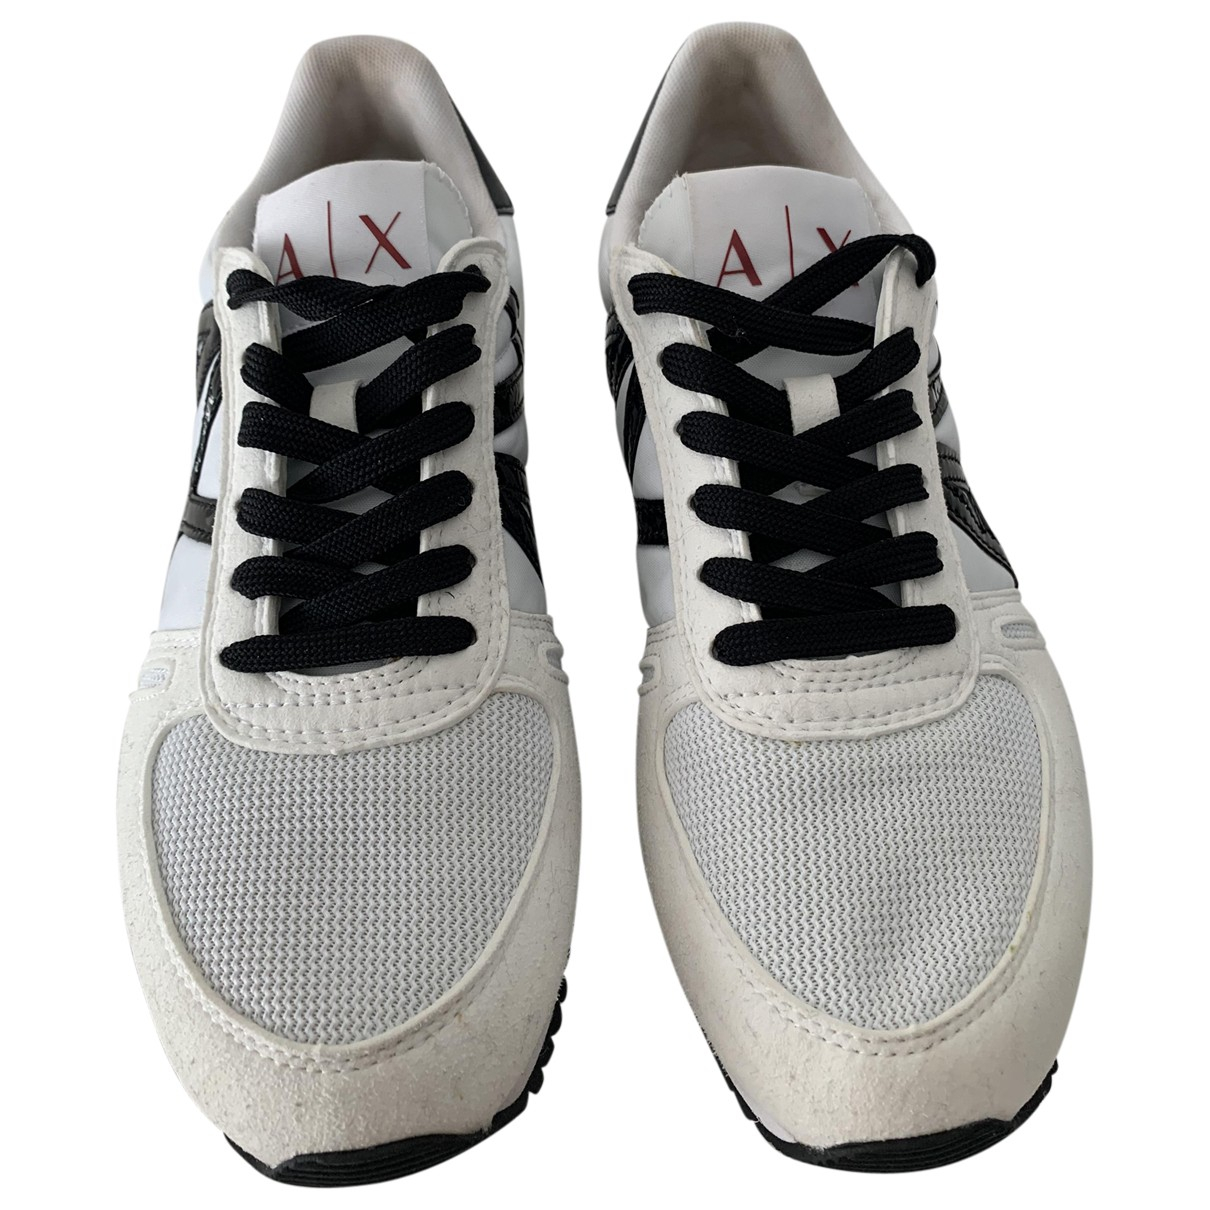 Emporio Armani \N Sneakers in  Weiss Leinen